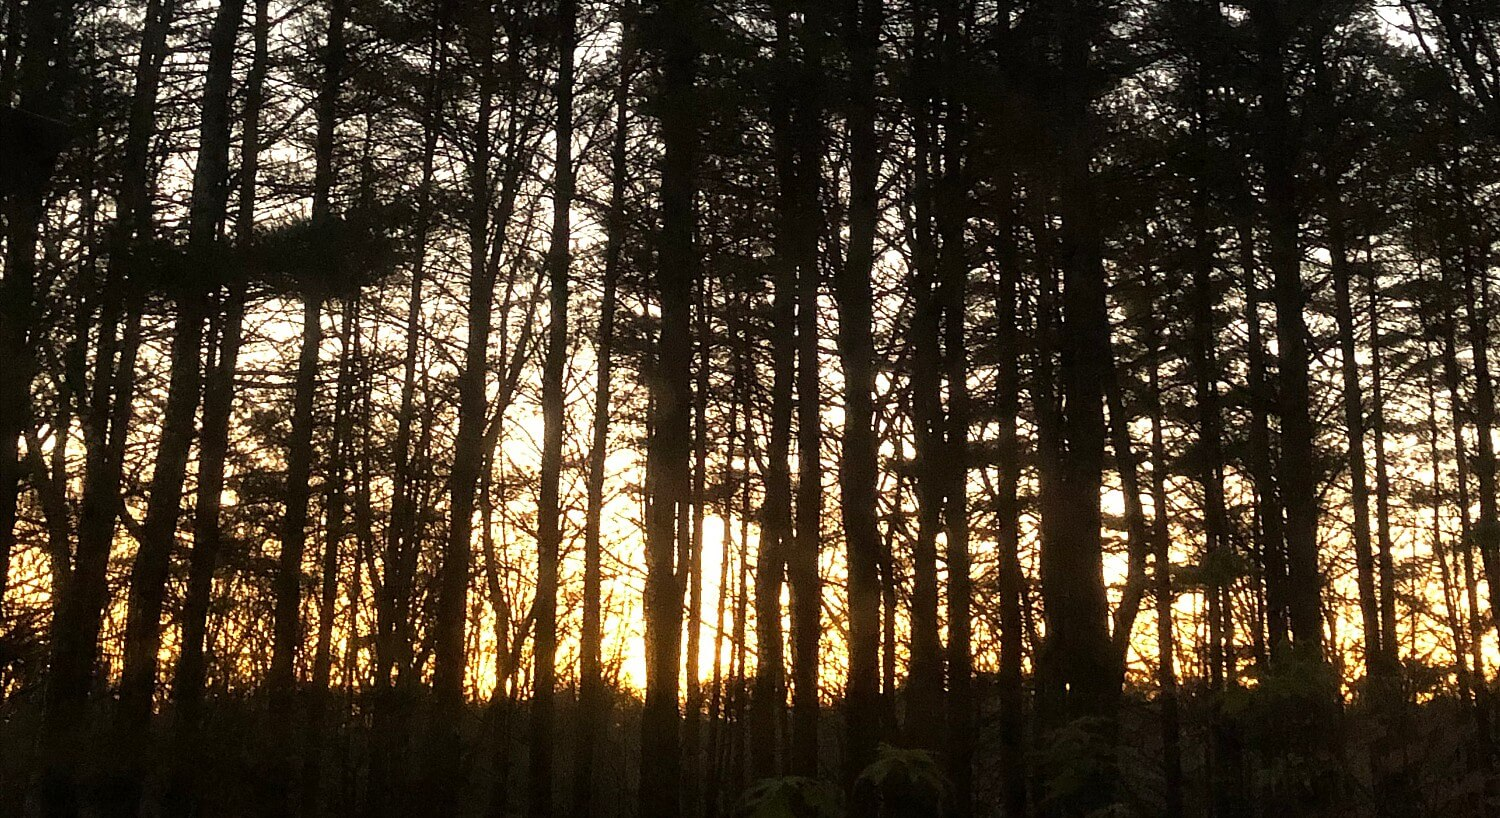 Bright yellow sunrise seen through a thick forest of tall skinny trees